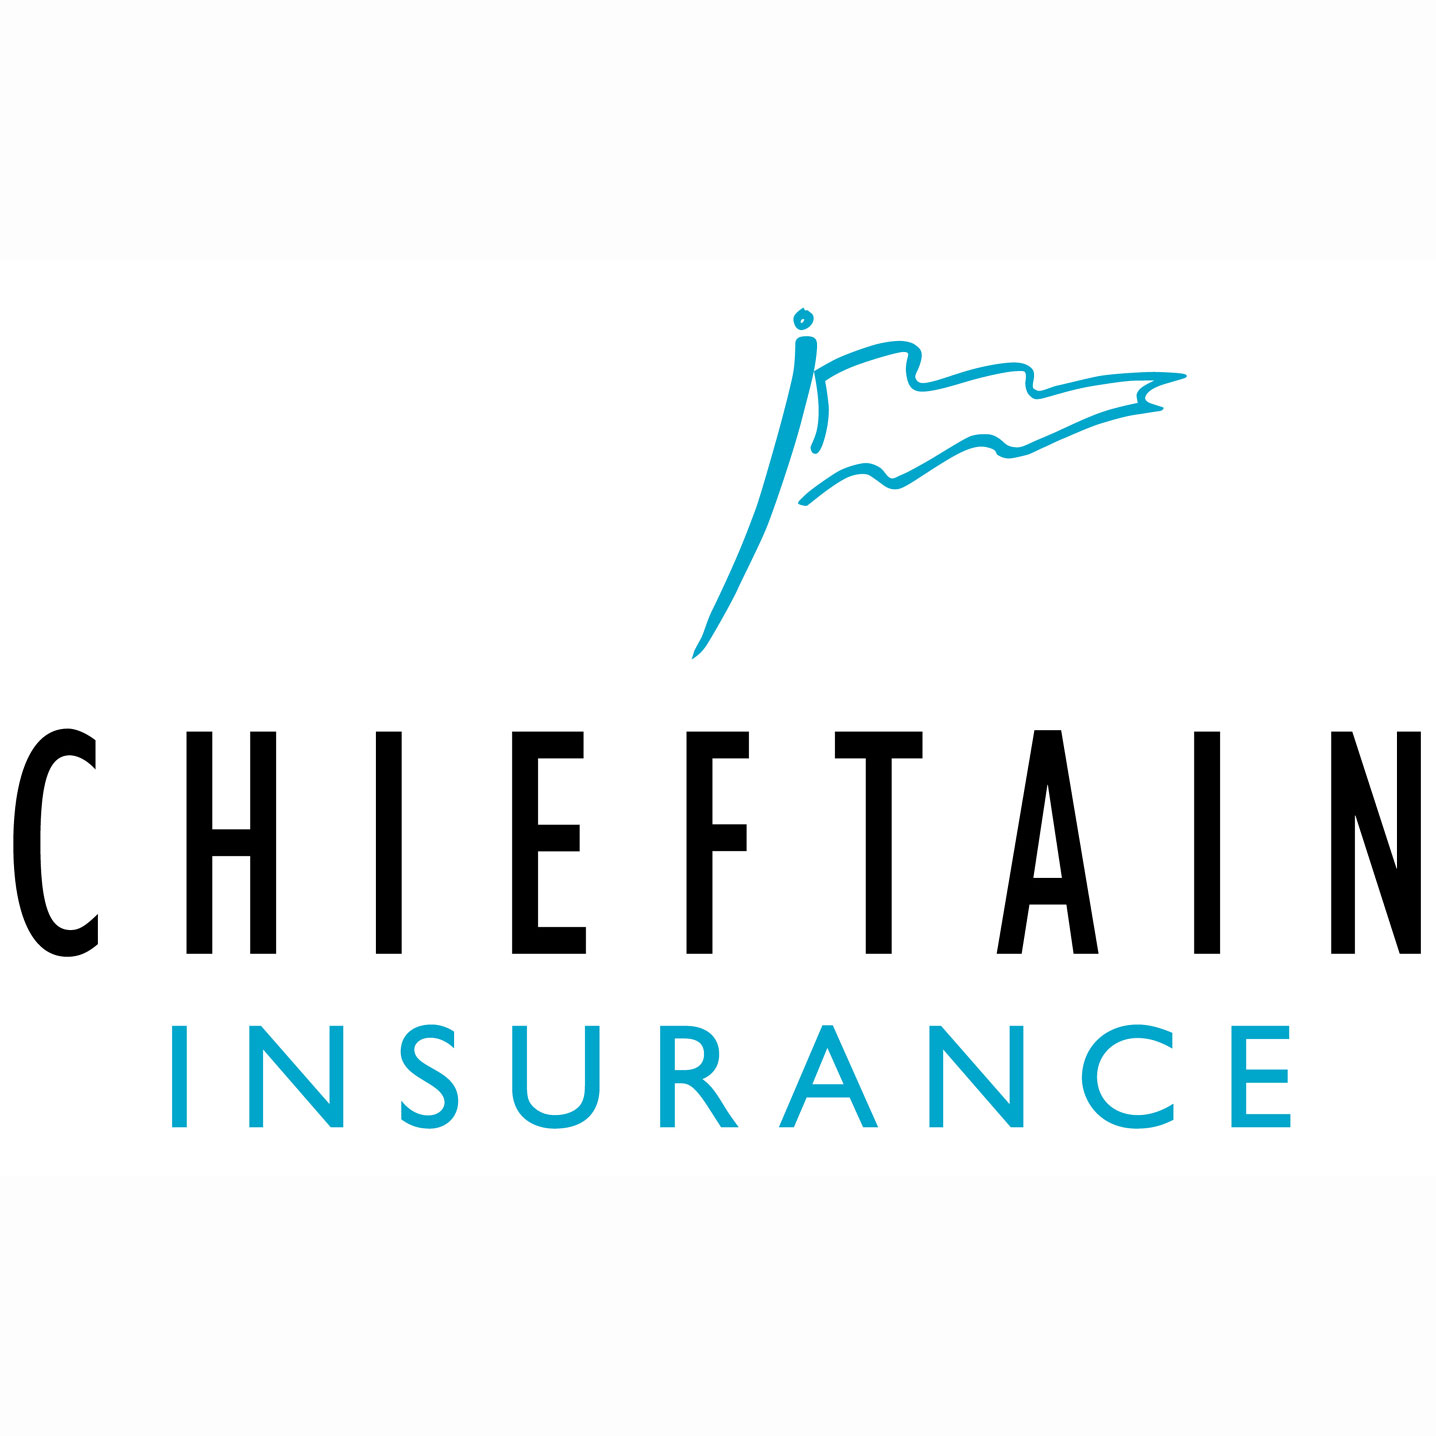 Chieftain Insurance - Jeffery & Spence